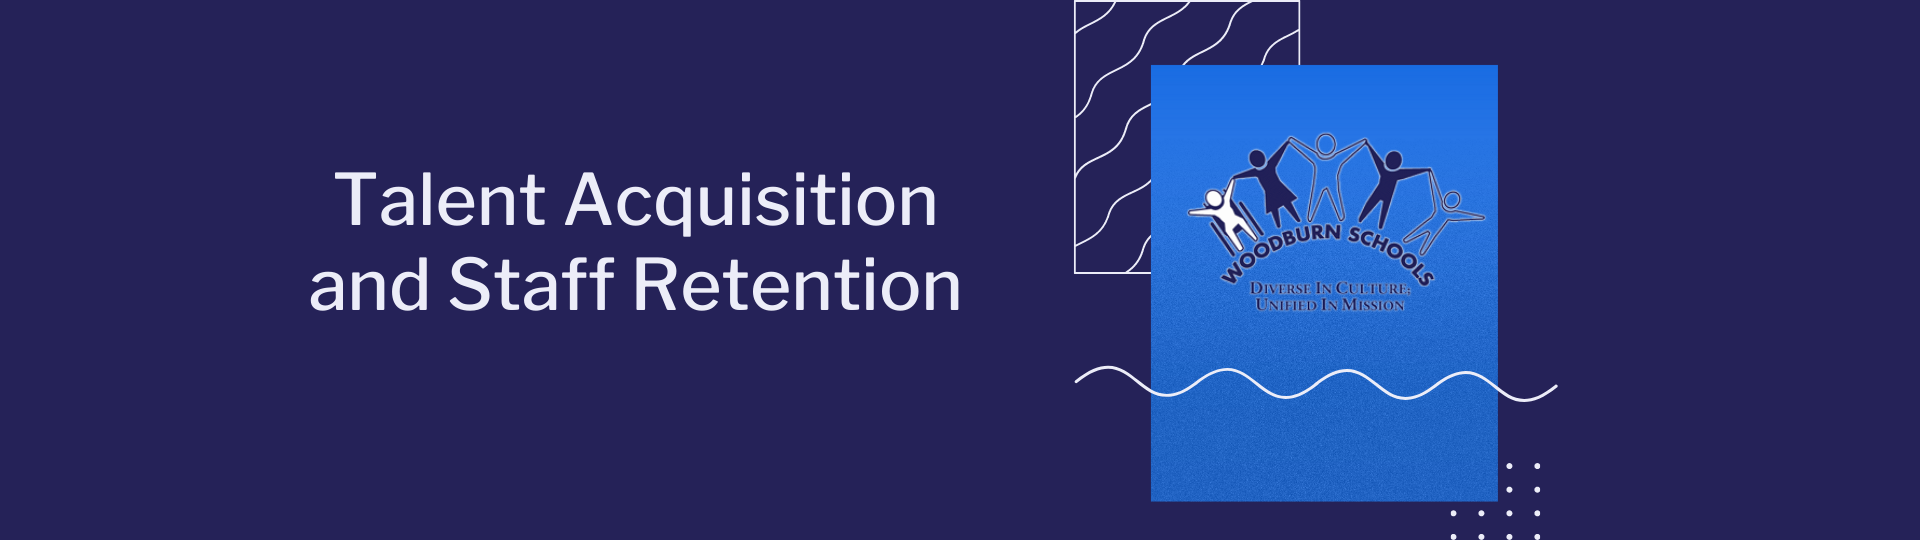 Talent Acquisition and Staff Retention